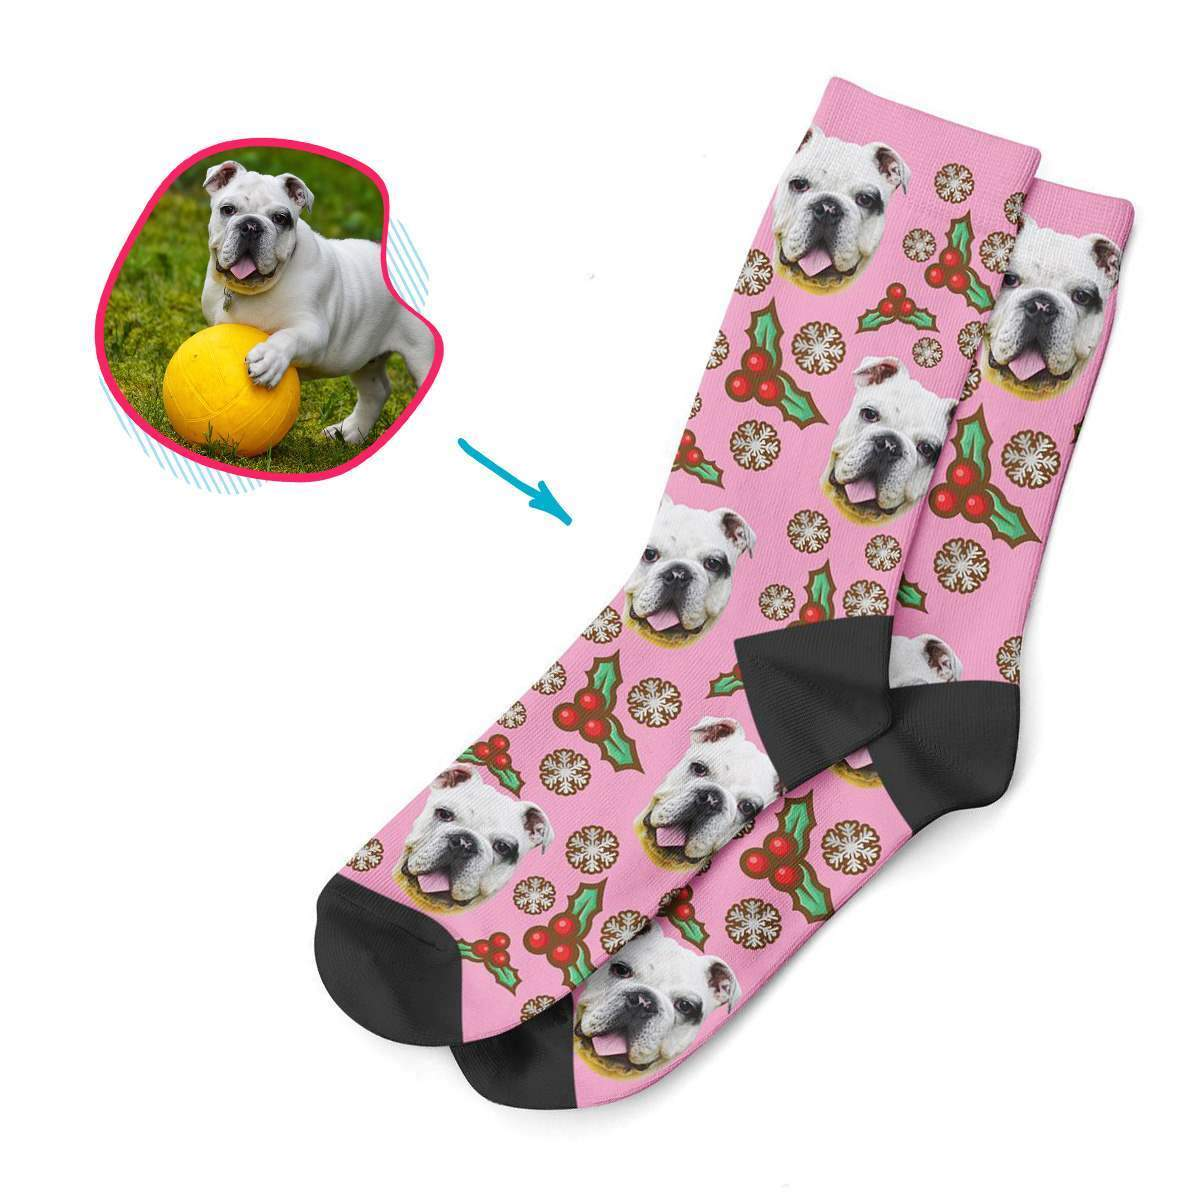 pink Mistletoe socks personalized with photo of face printed on them